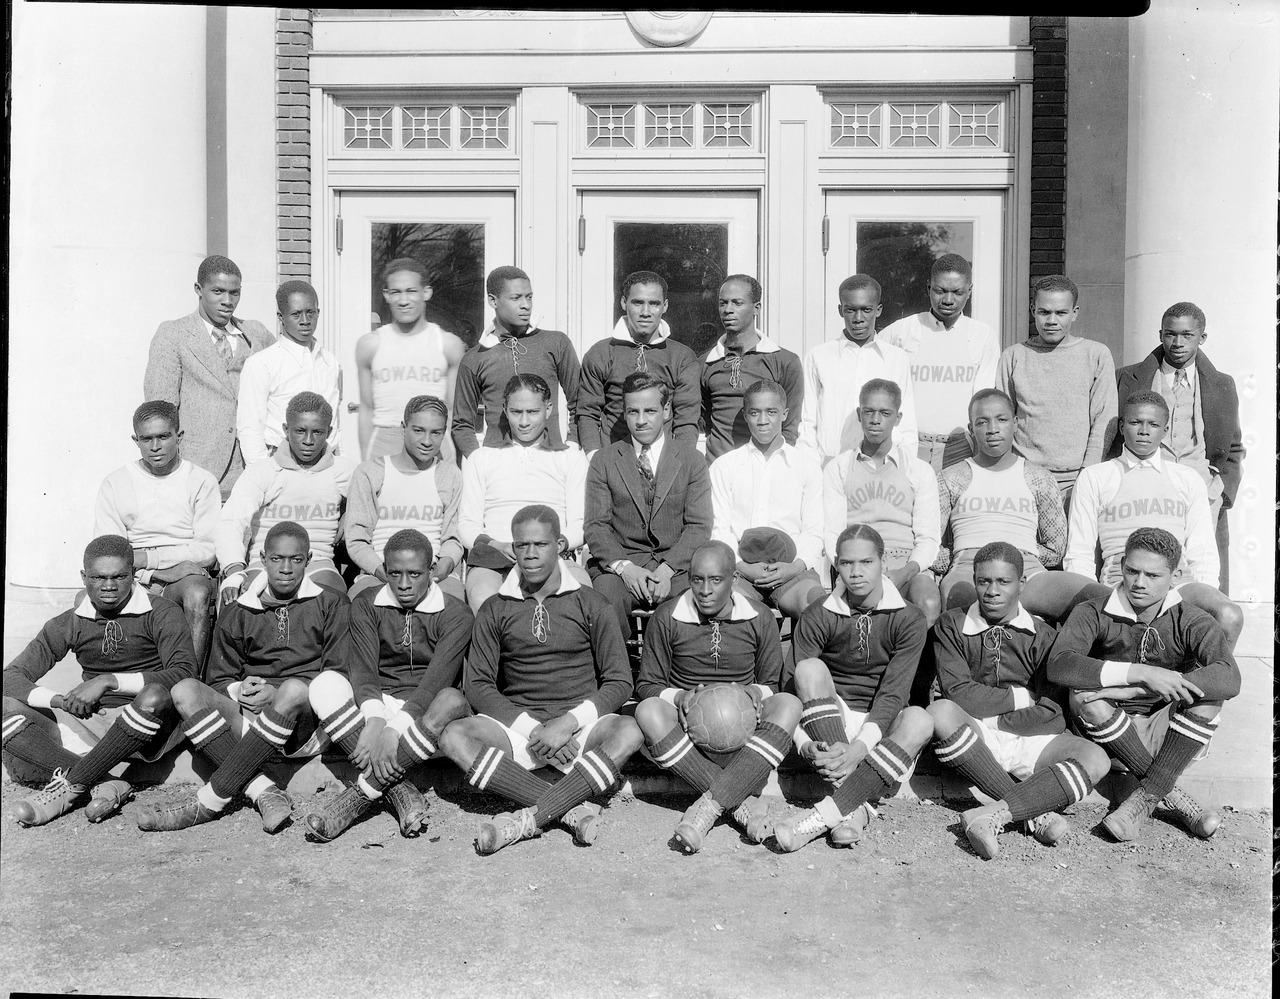 Howard University soccer team pictured in 1930, the first year of varsity competition in the sport at the historically black college in Washington D.C. In issue one of XI, Tom Dunmore tells the groundbreaking and remarkable story of Howard's soccer team, who in the 1970s became the first NCAA champions from a predominantly black college.Photo courtesy of the National Museum of American History's Addison N. Scurlock collection.